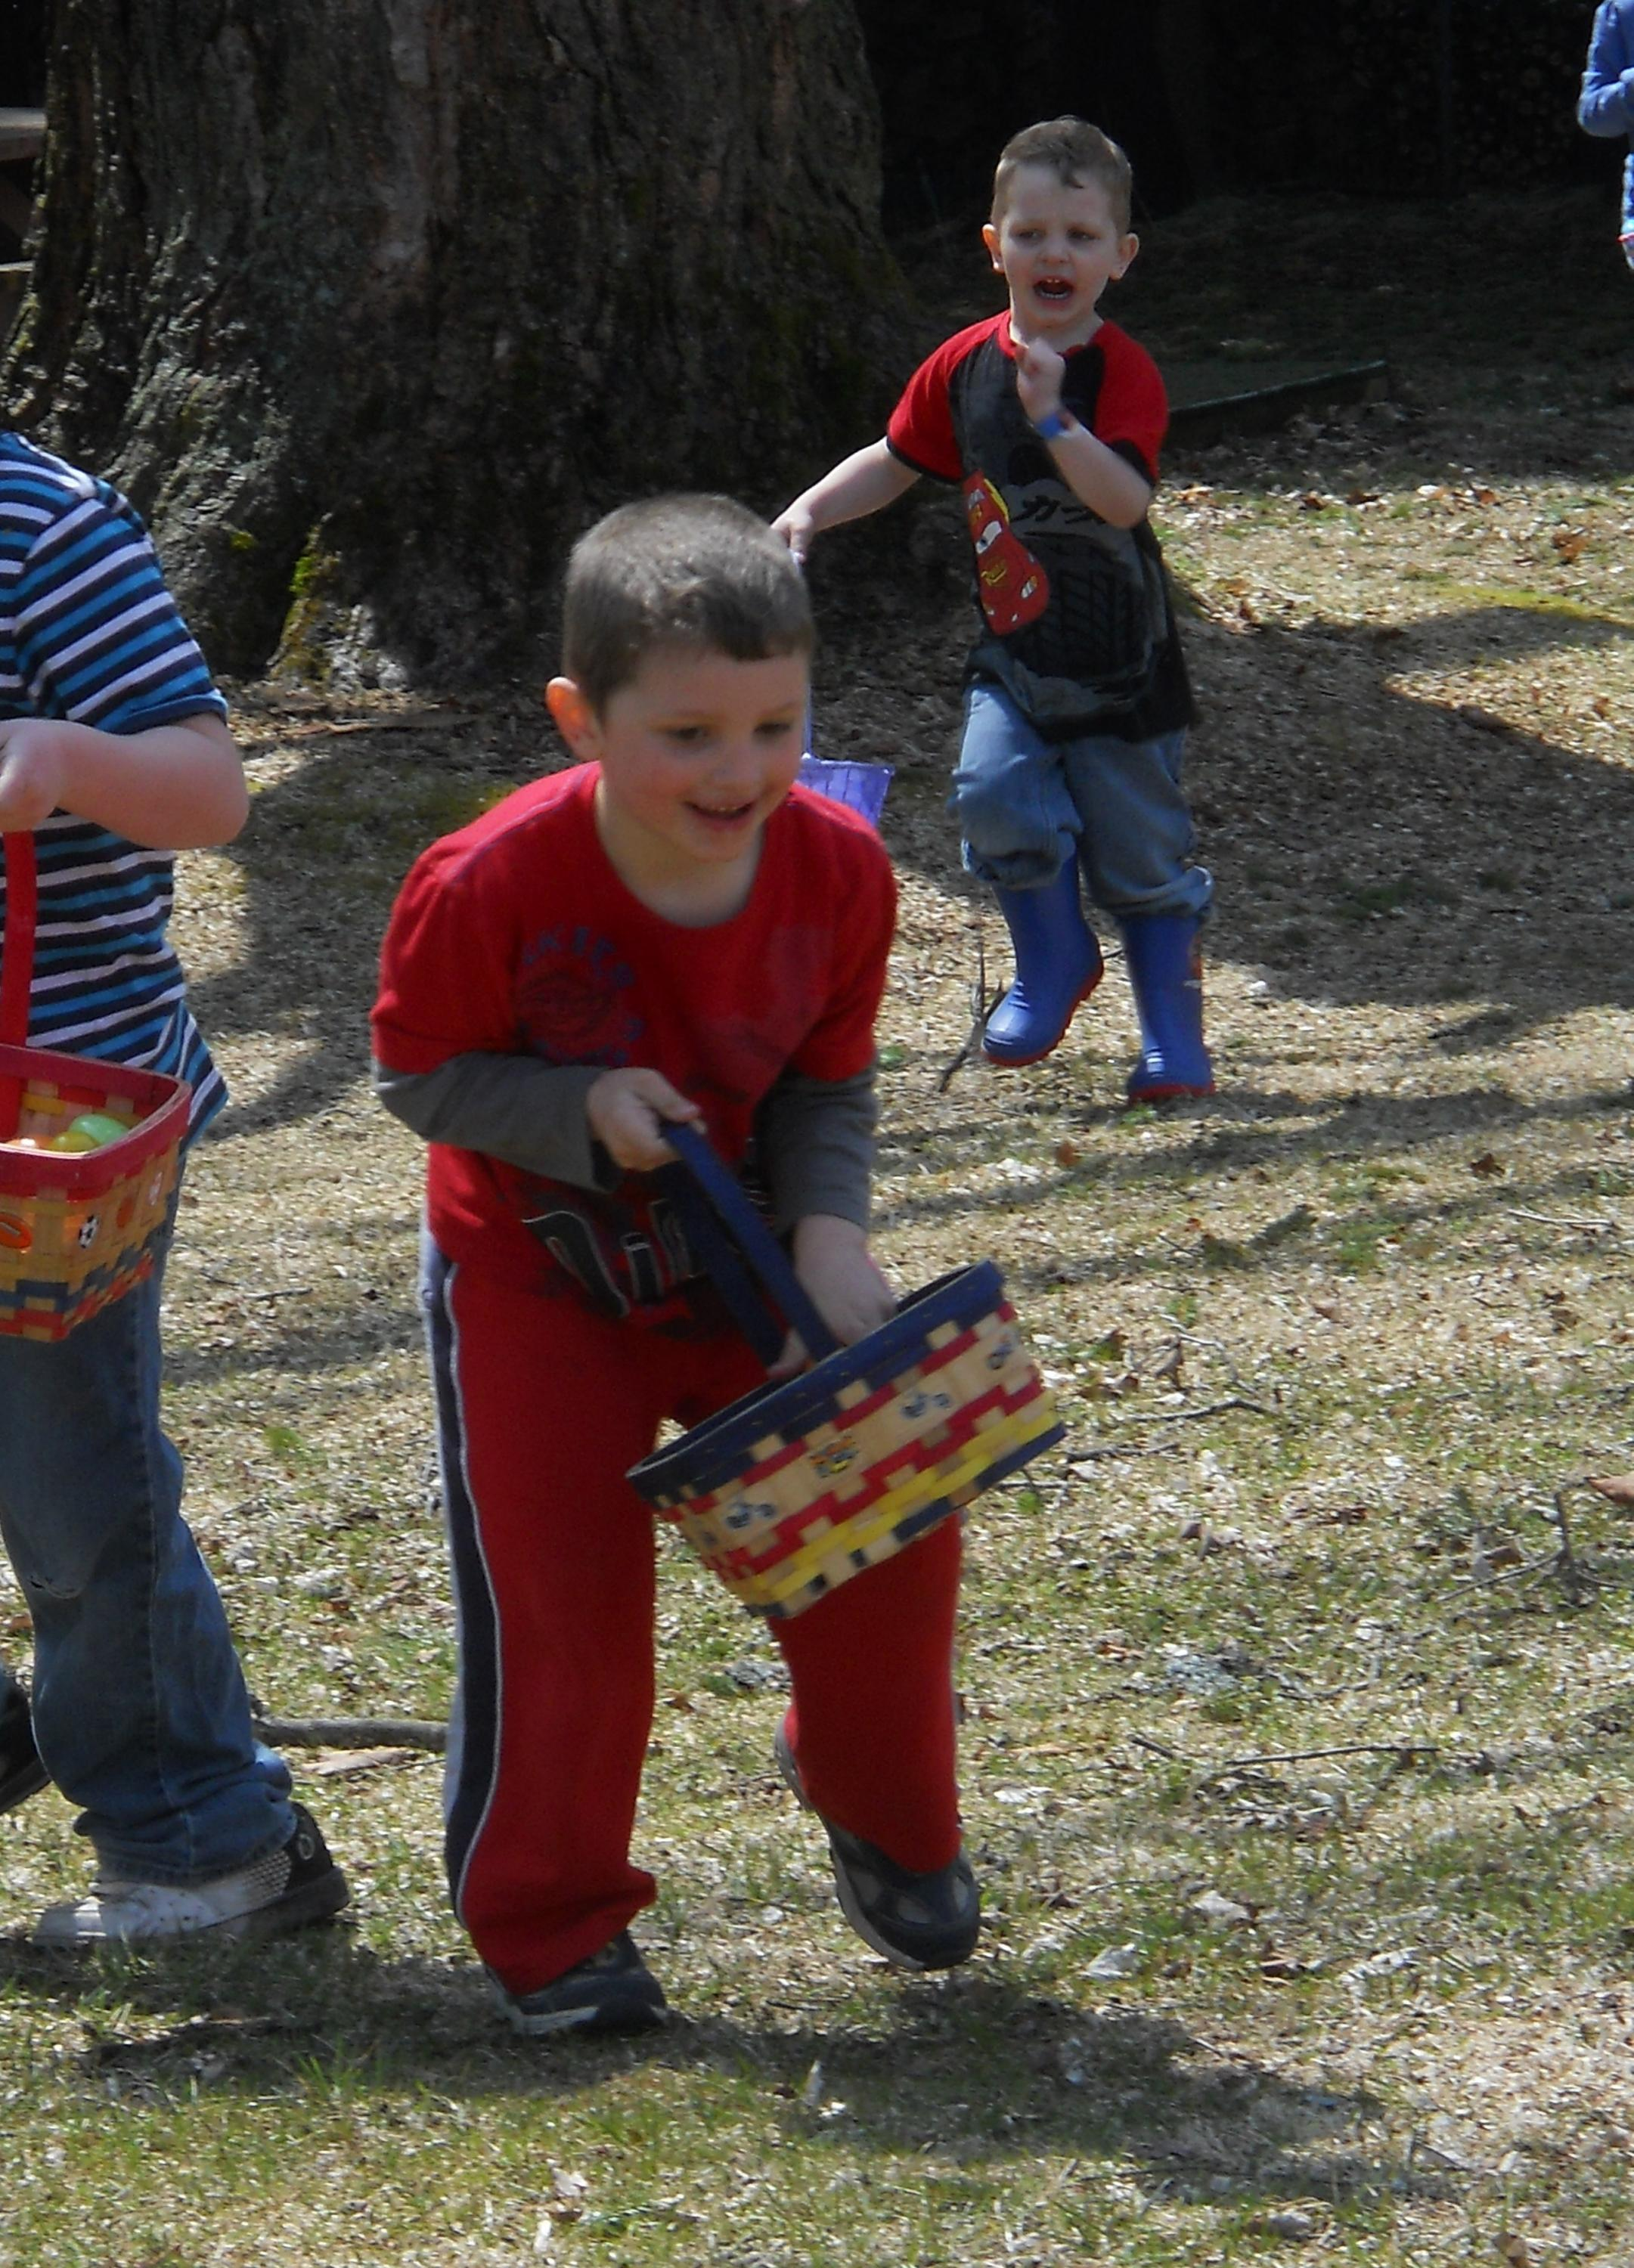 small excited children collecting Easter eggs